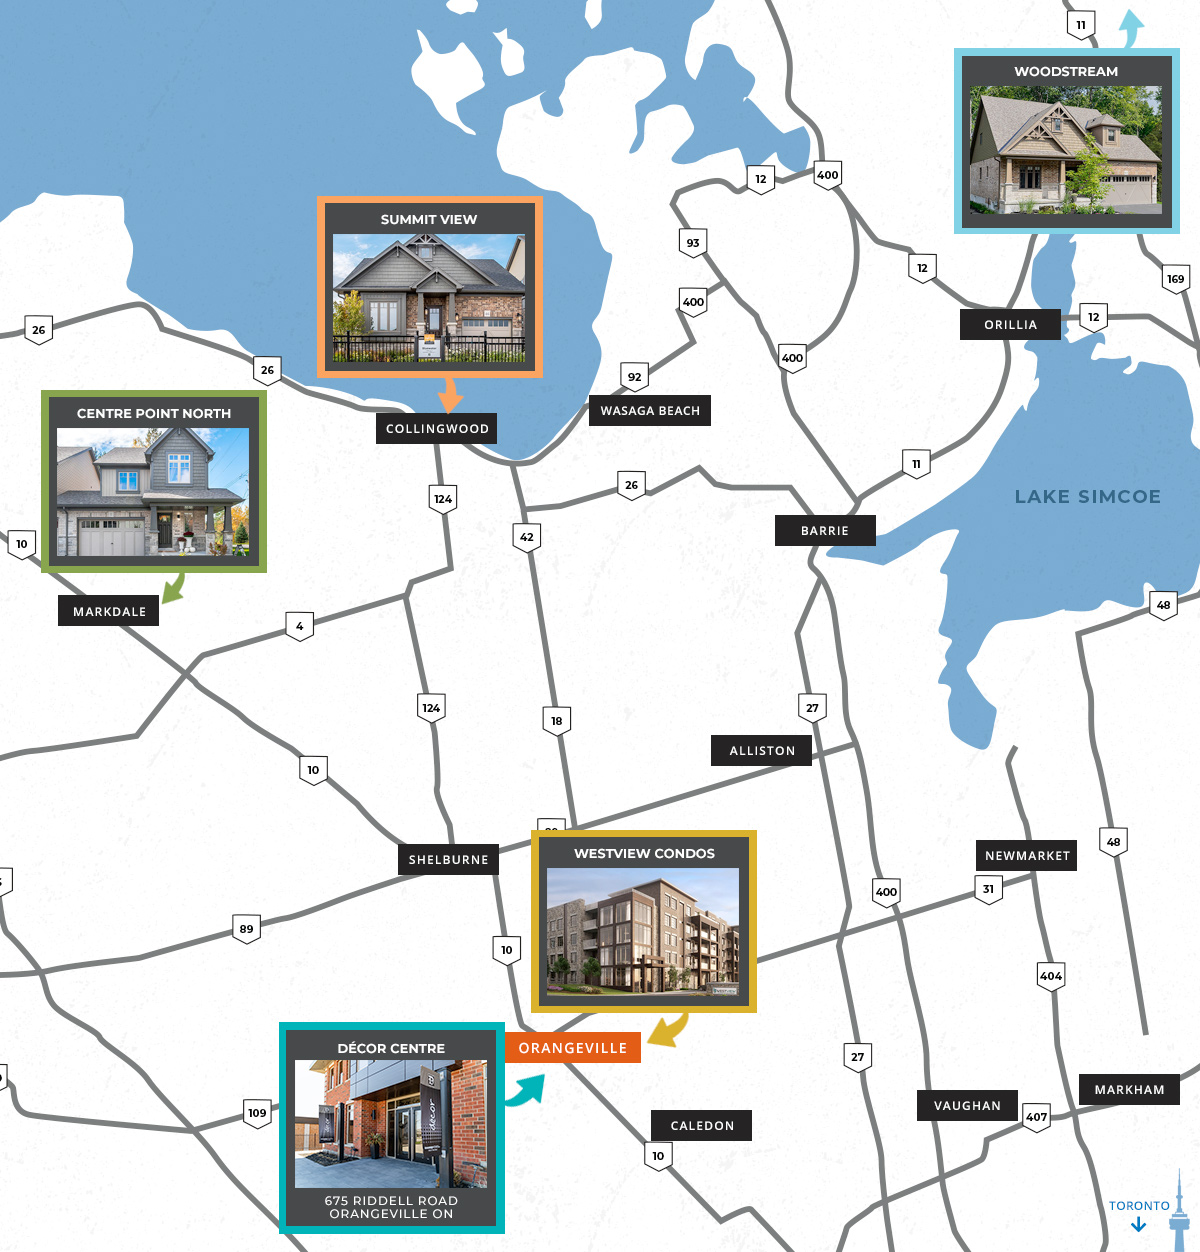 New housing developments in Ontario